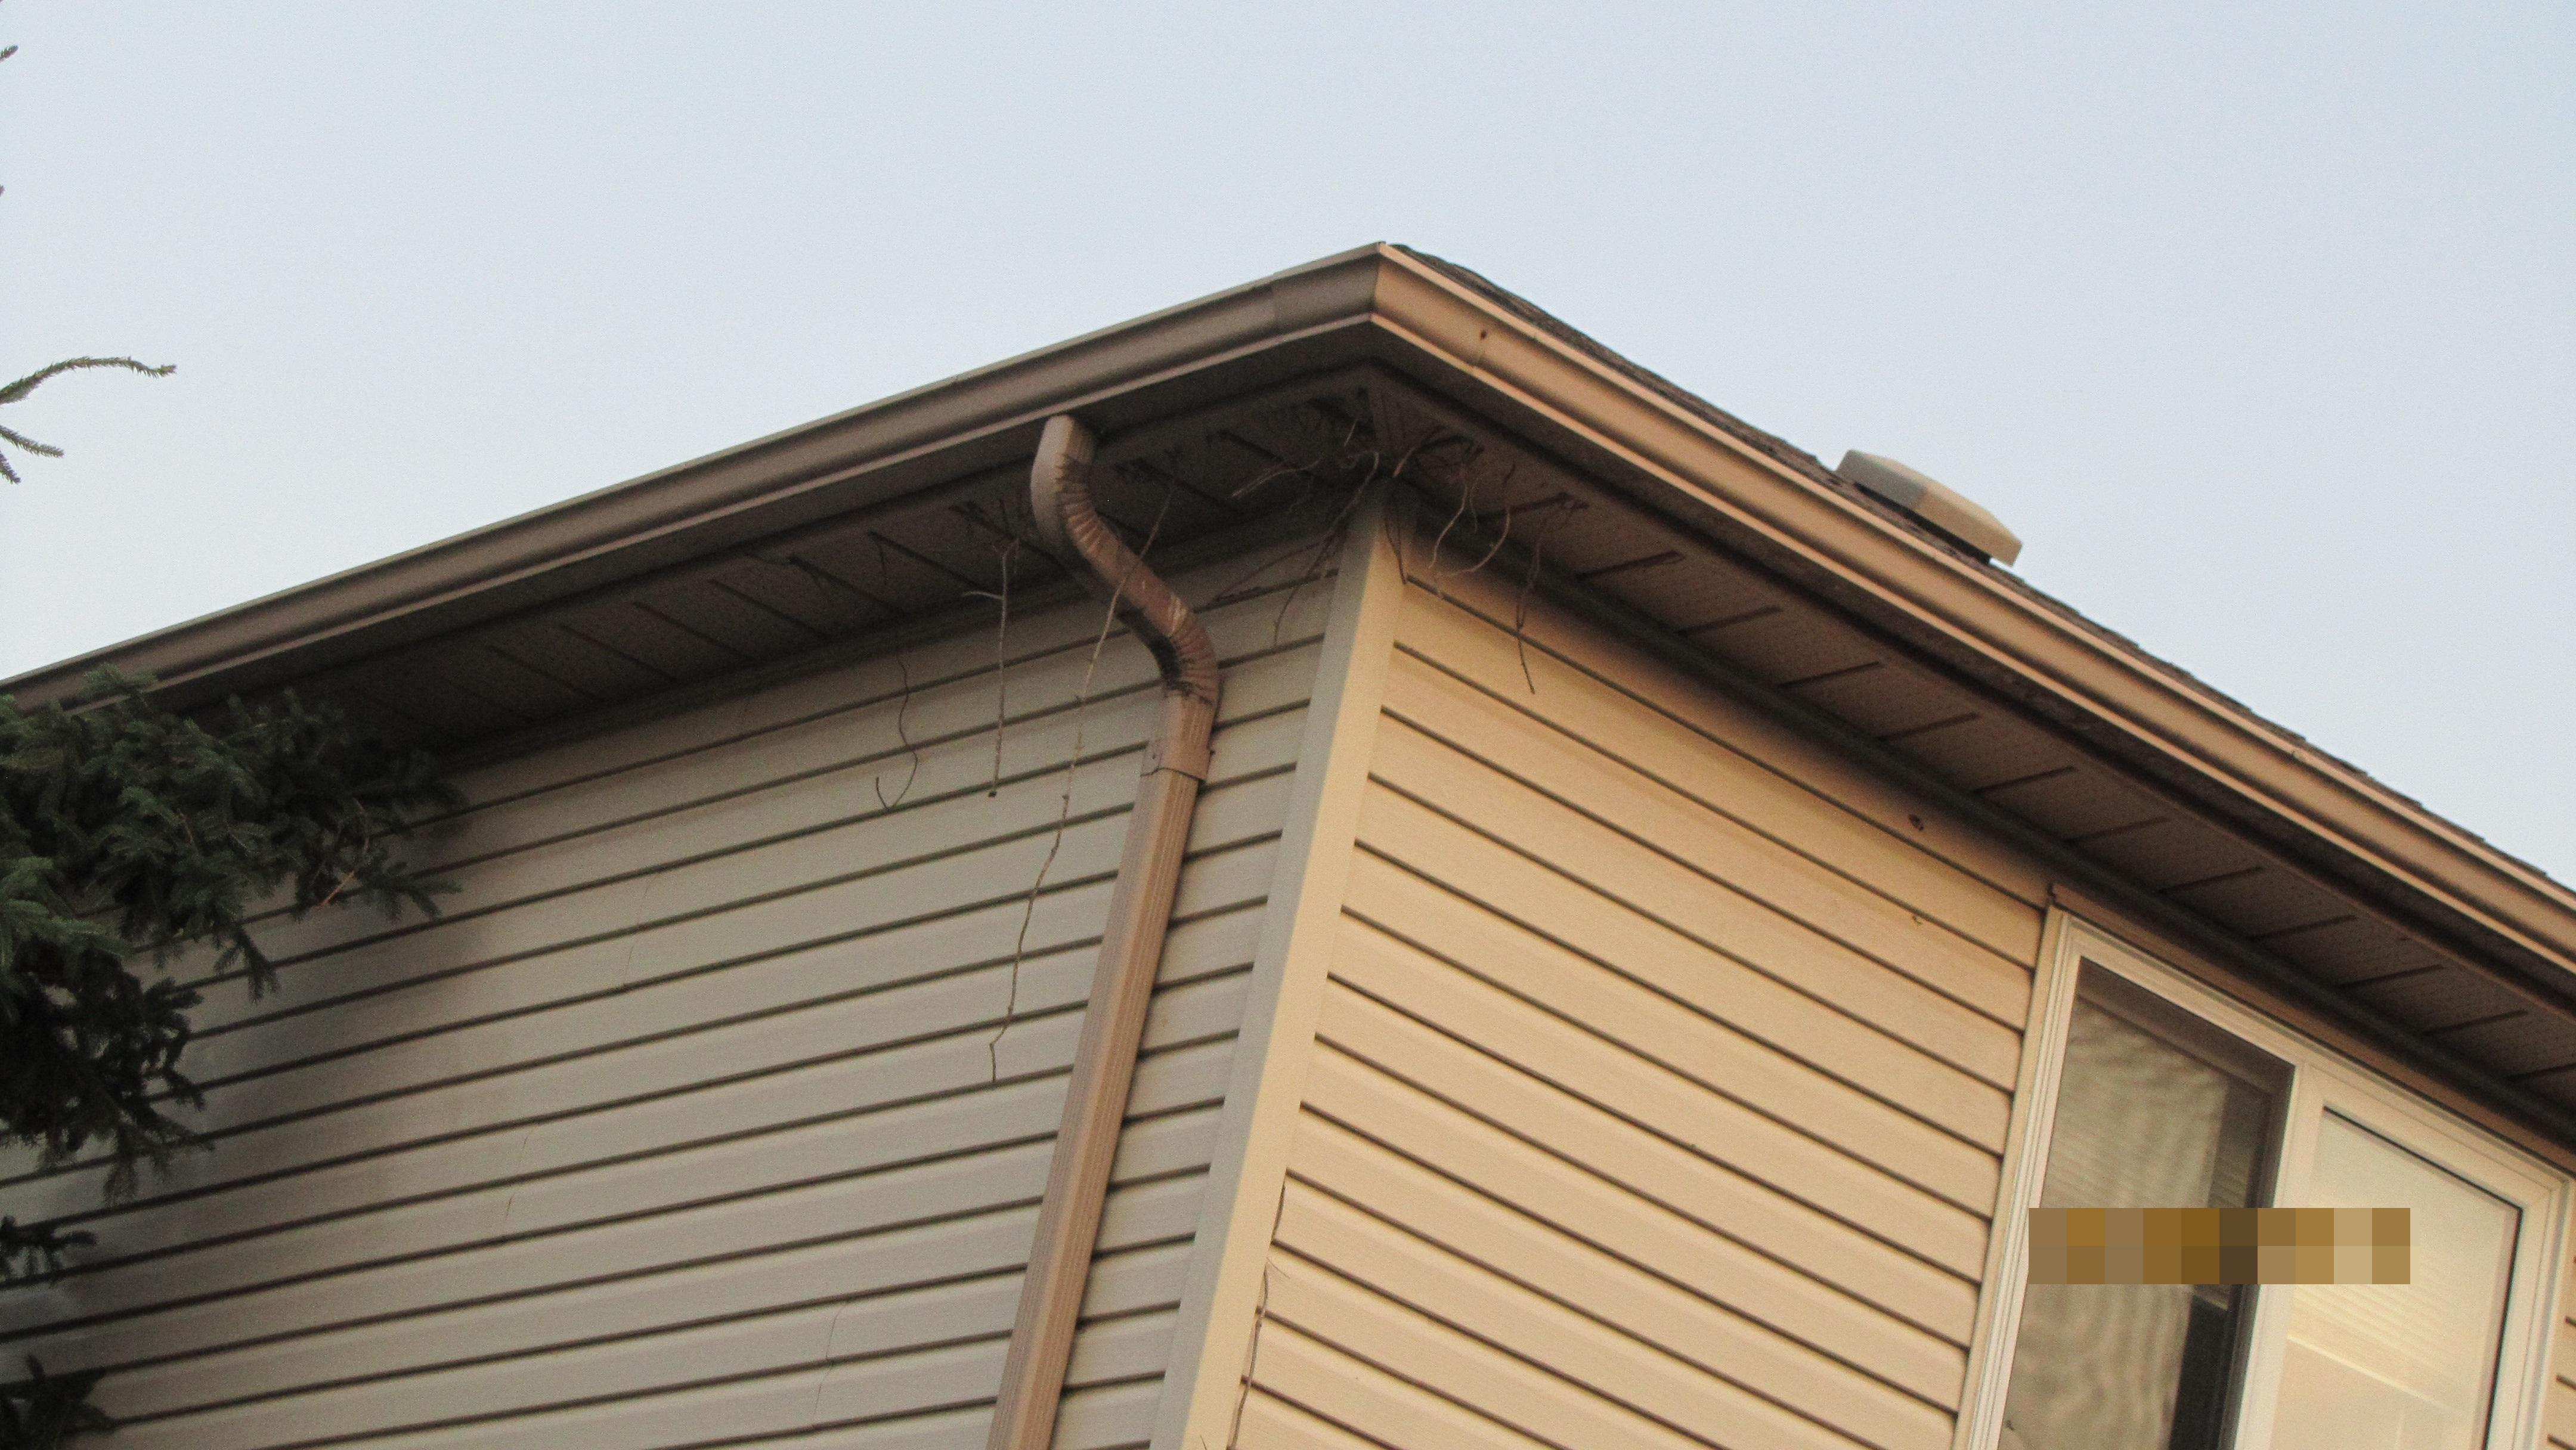 Tree branches coming through Attic